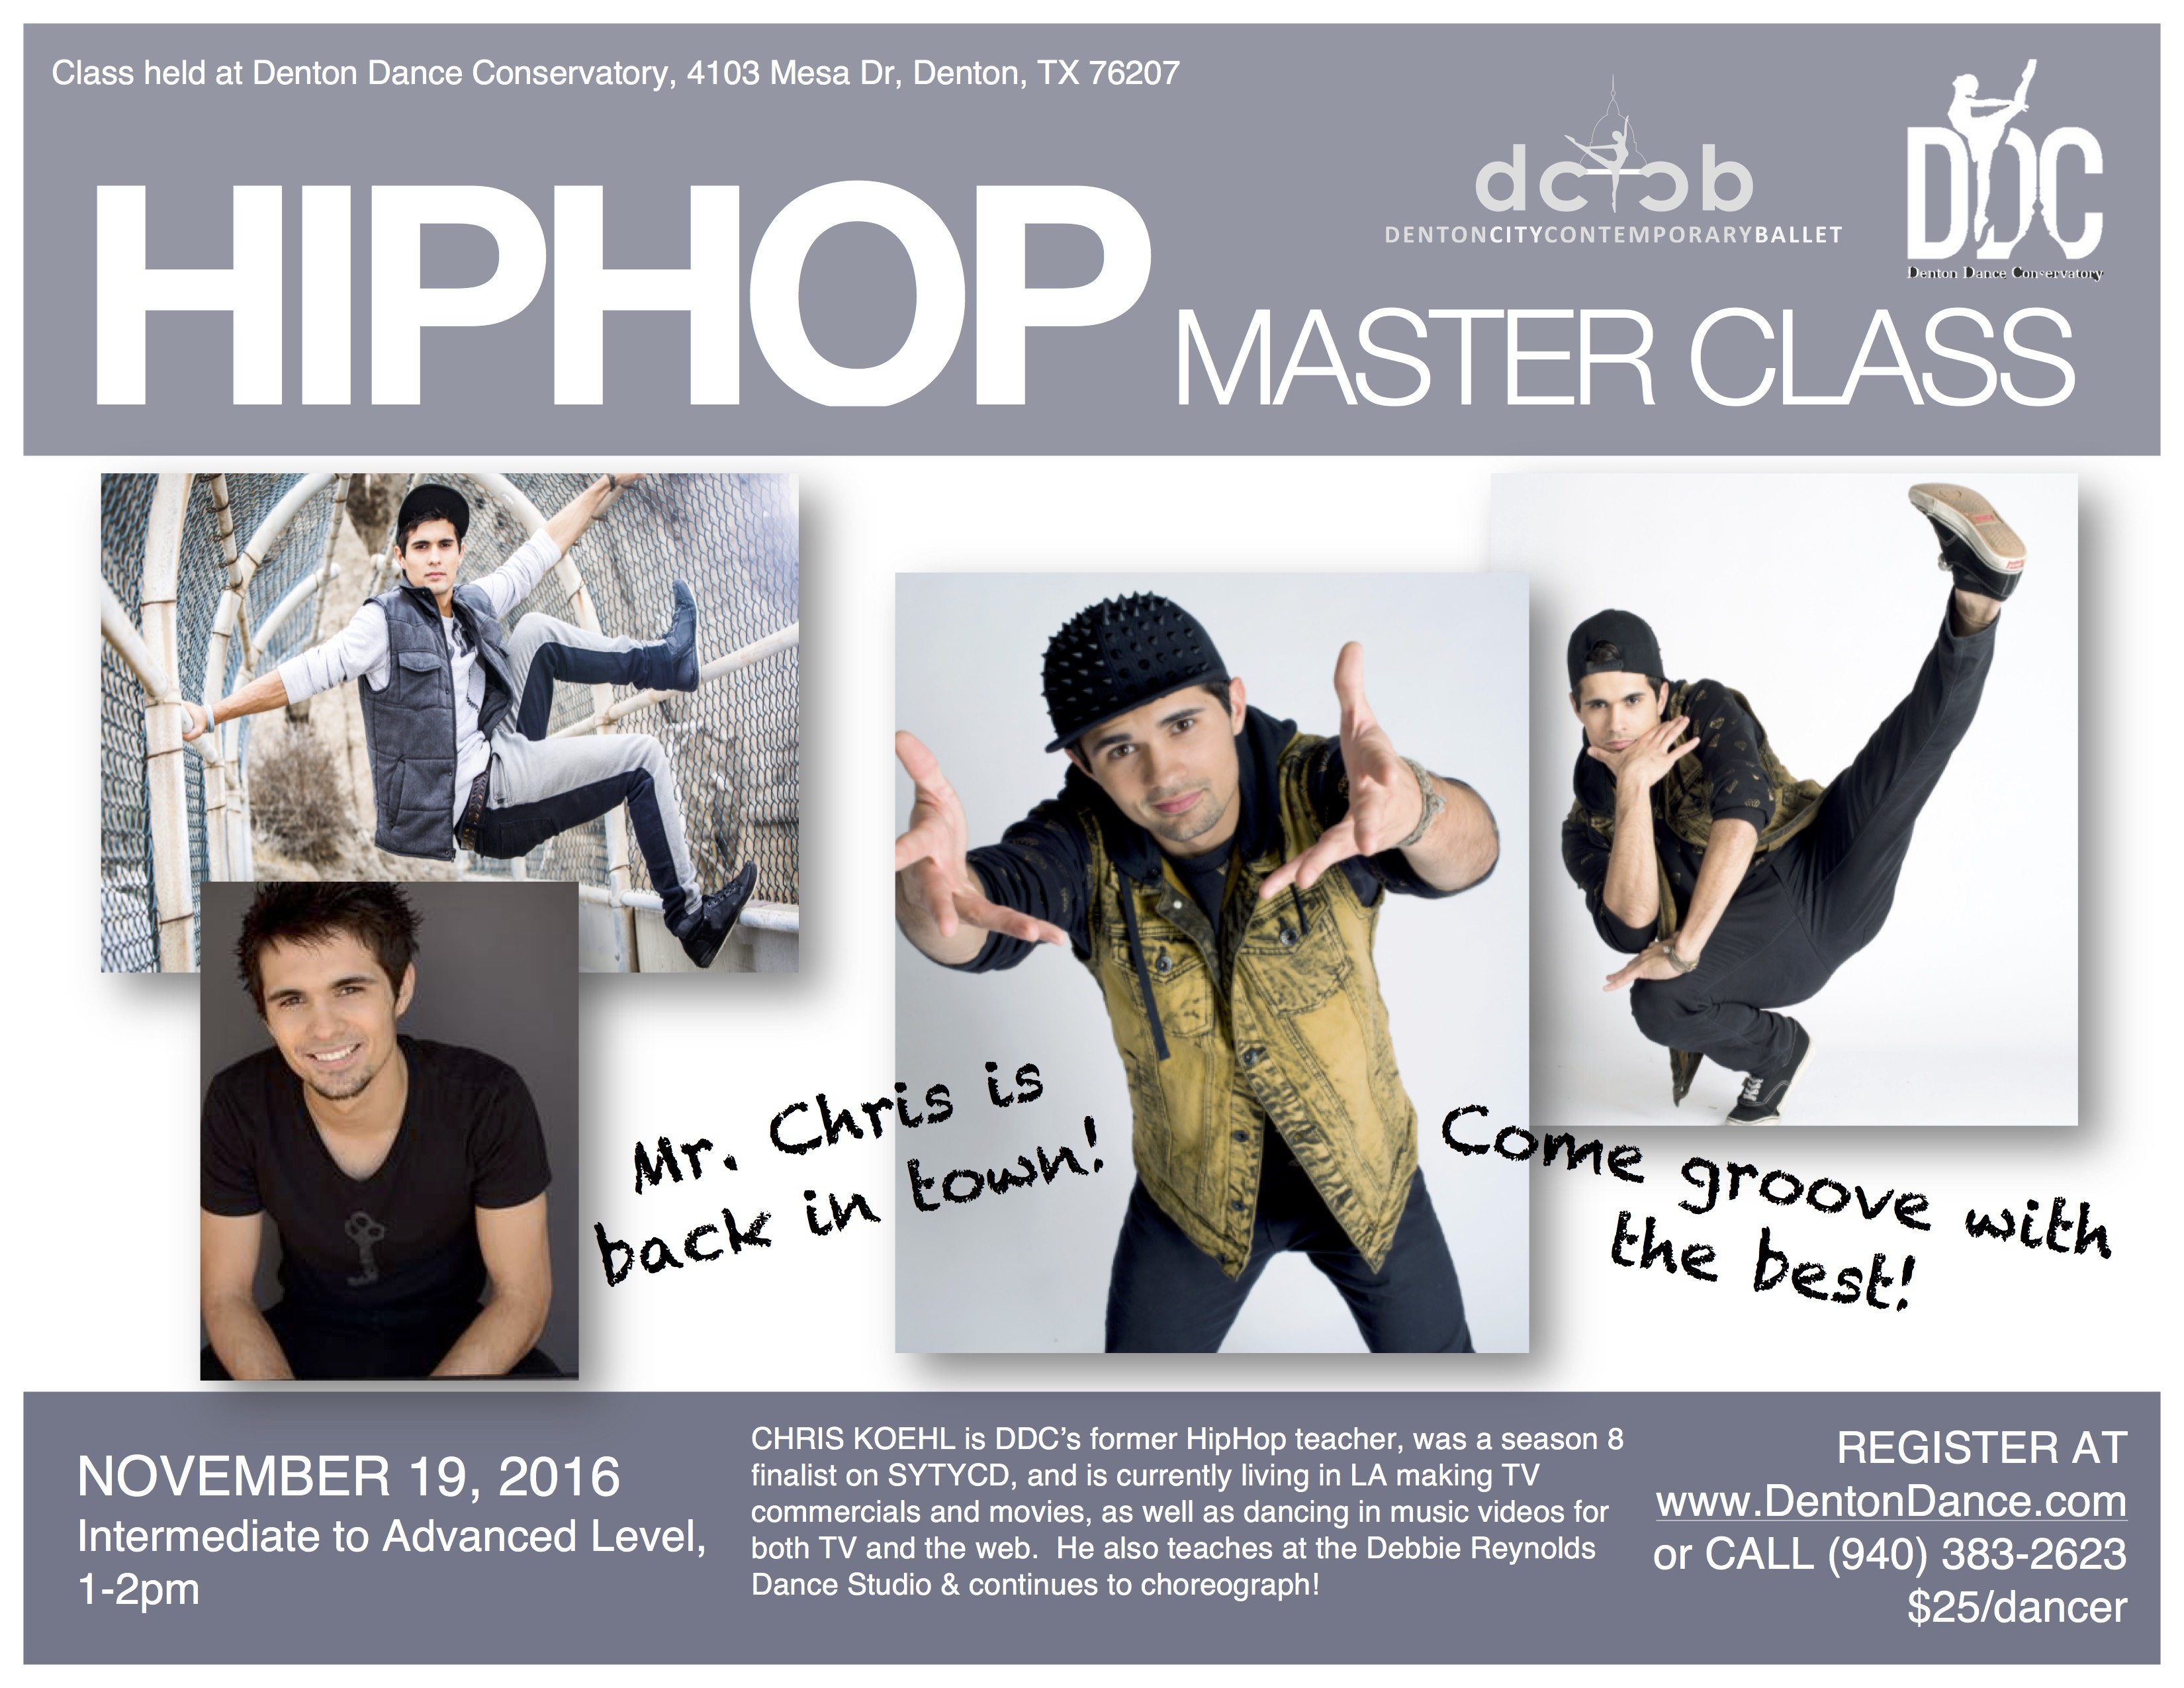 Chris Koehl Master Class Flyer 2016 Small (1)